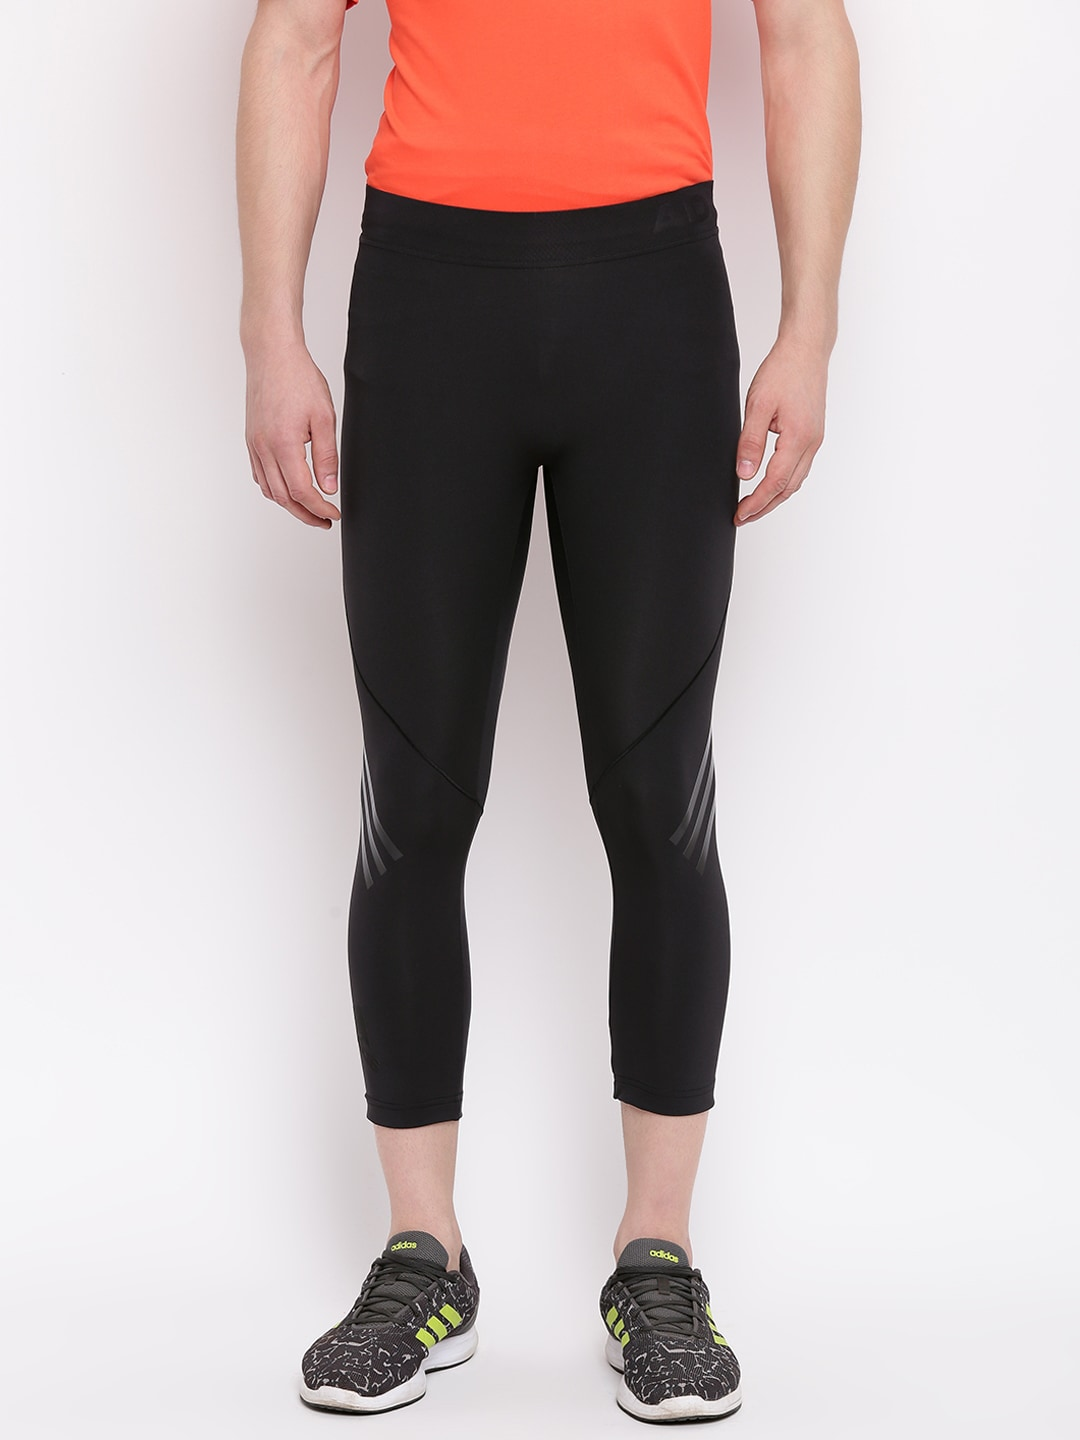 250086b54562d Adidas Tights Jeans Dresses - Buy Adidas Tights Jeans Dresses online in  India